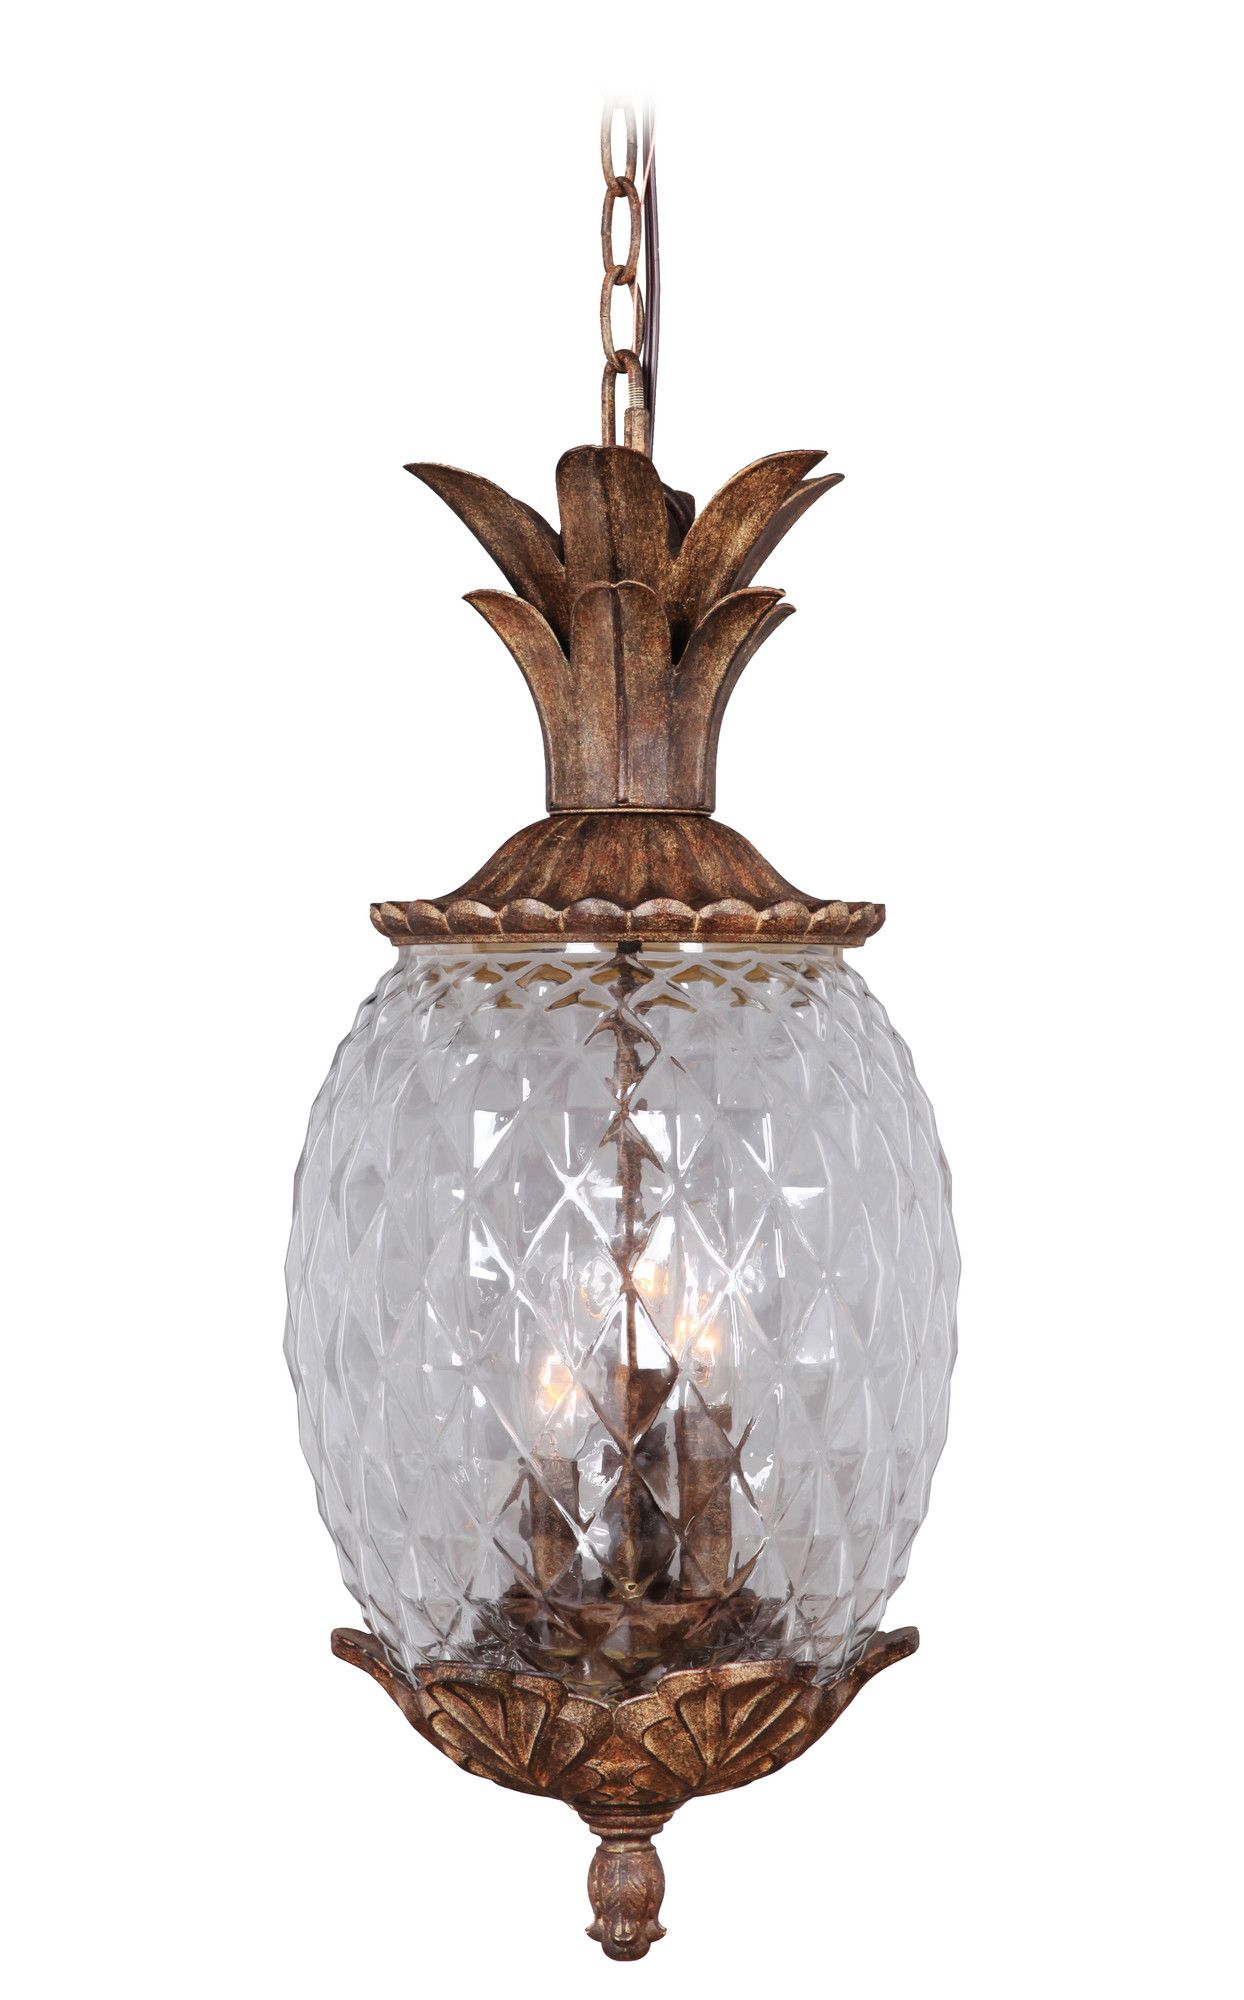 Marianahome pineapple 3 light pendant reviews wayfair lighting marianahome pineapple 3 light pendant reviews wayfair aloadofball Gallery